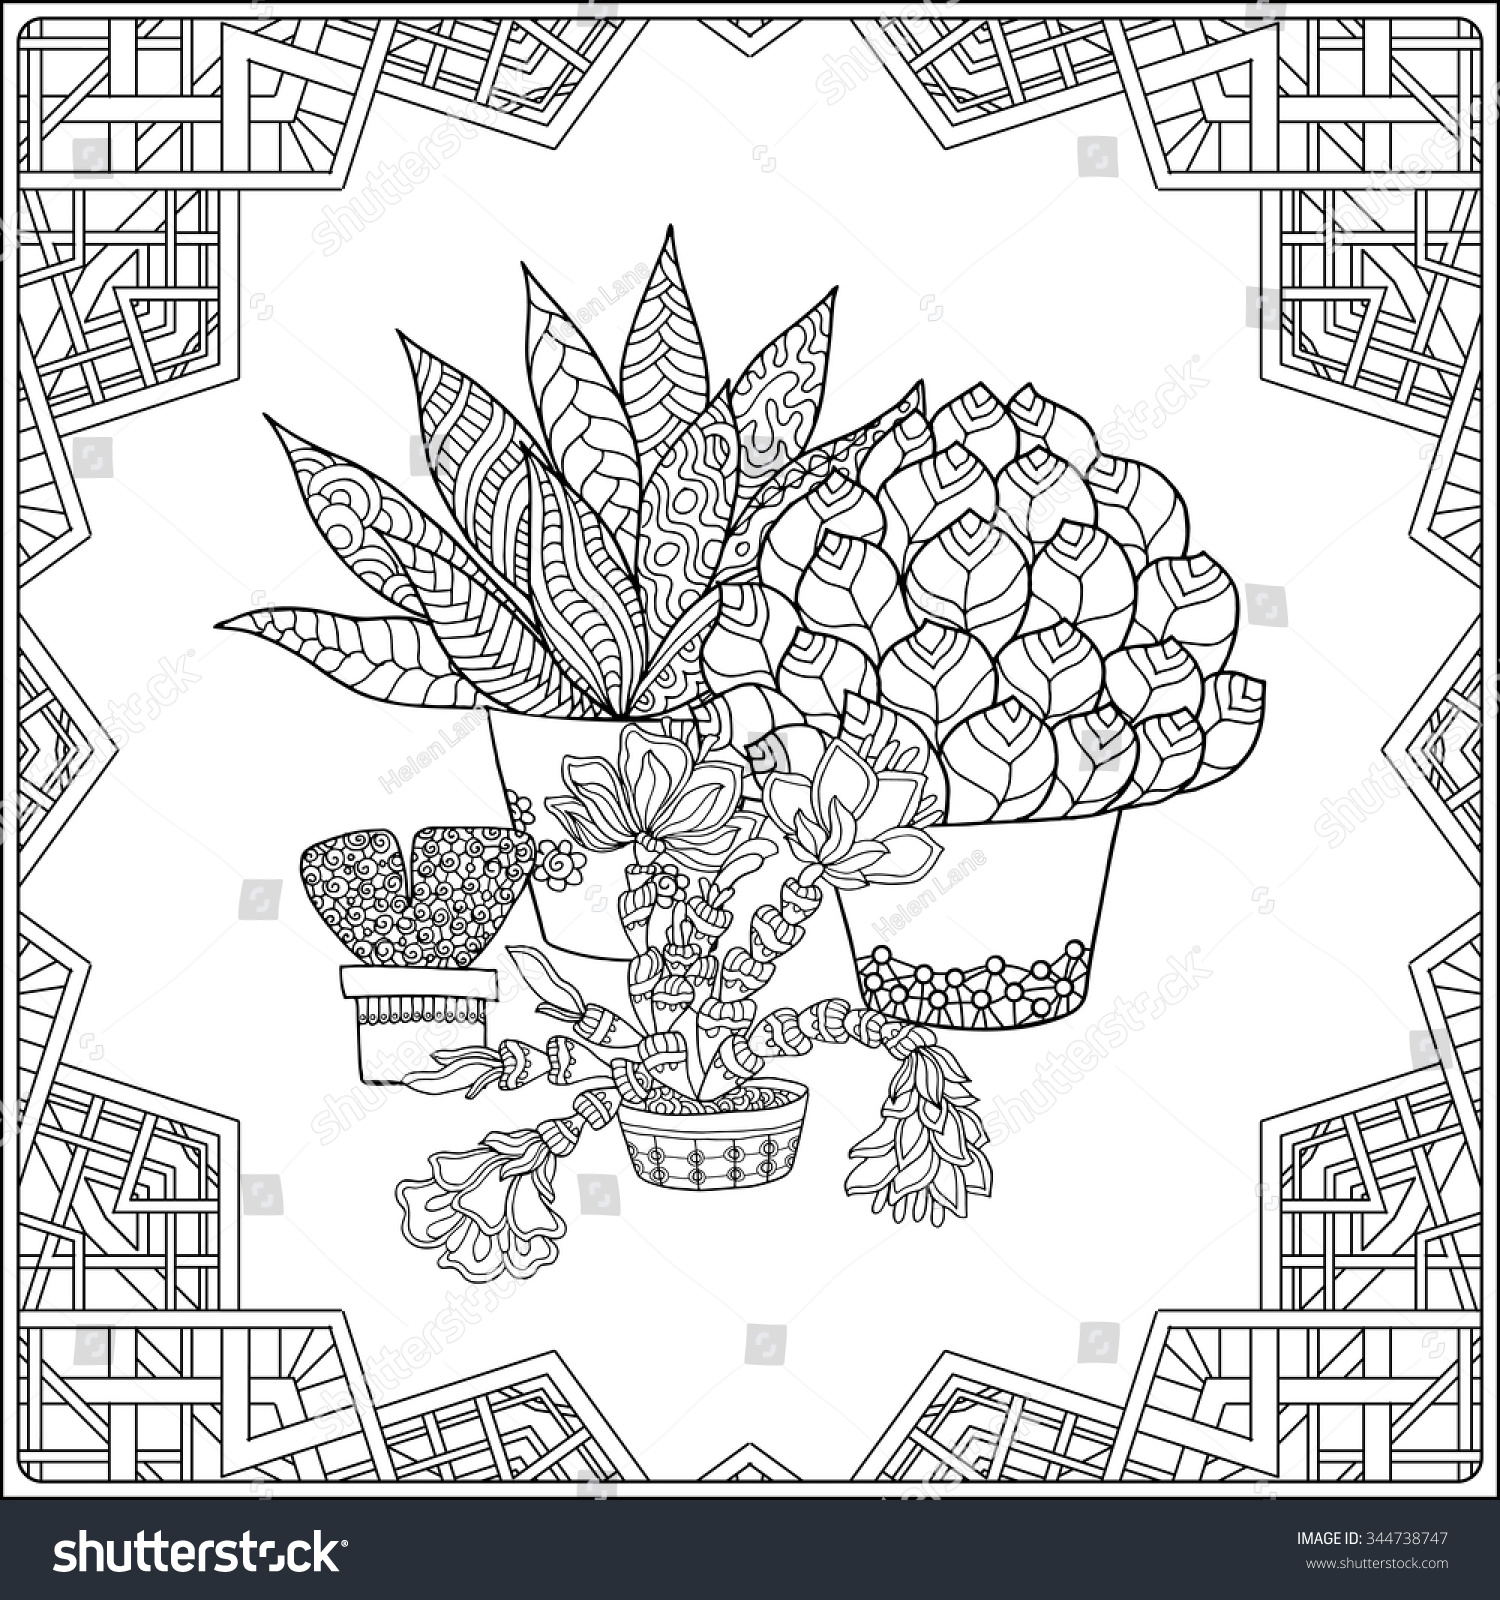 Coloring Book Adult Older Children Coloring Stock Vector HD Royalty